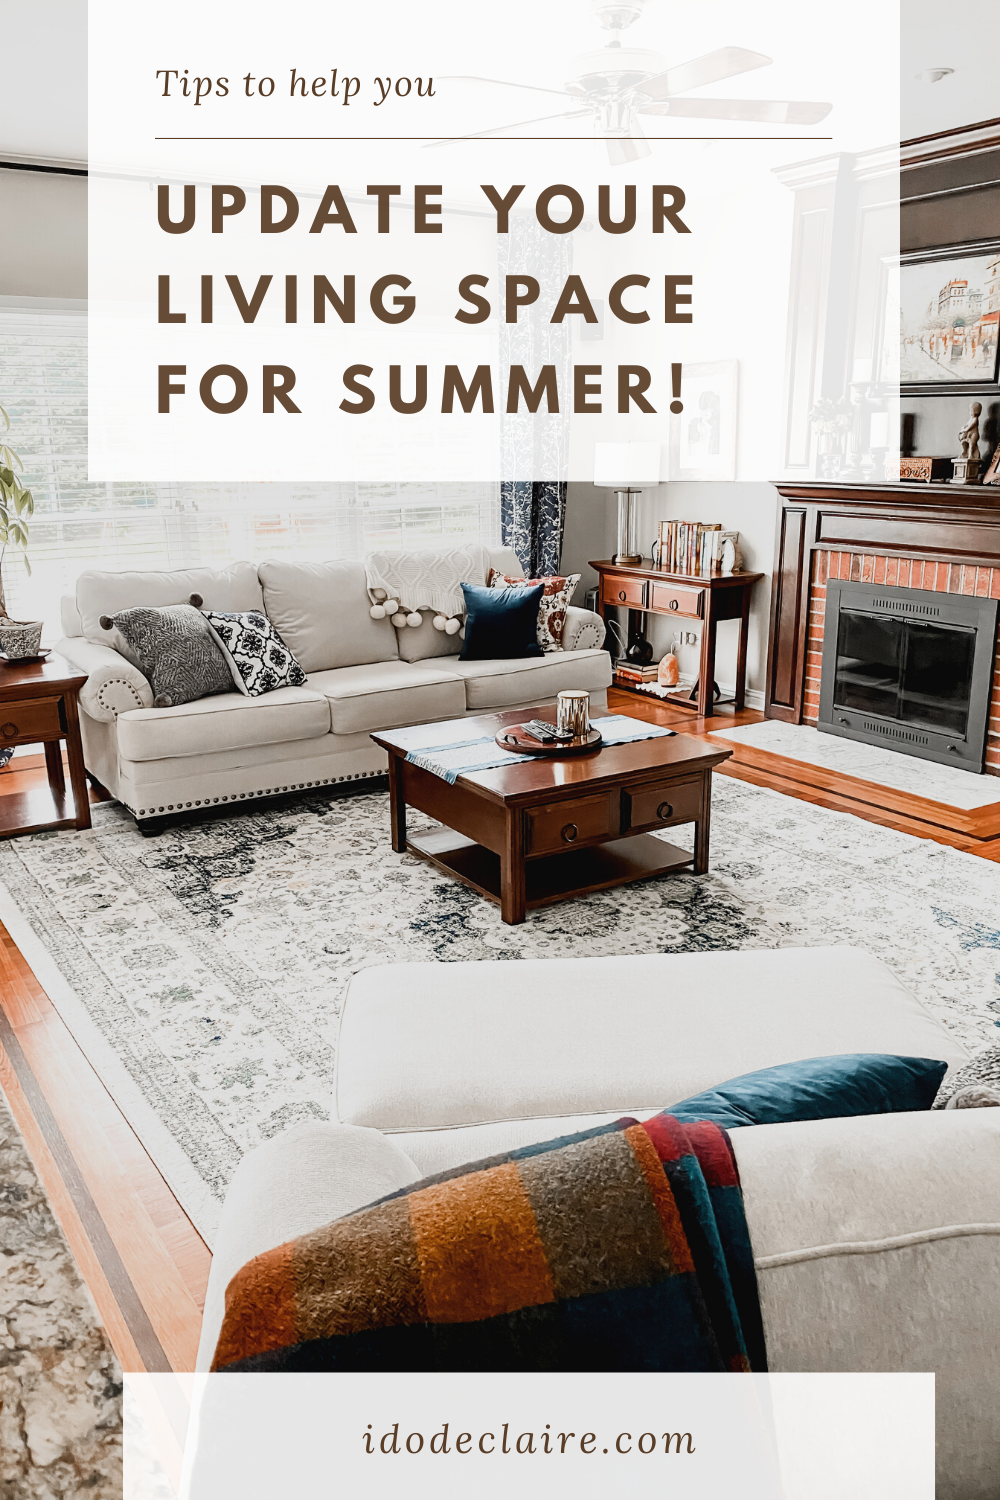 Update Your Living Space for Summer!